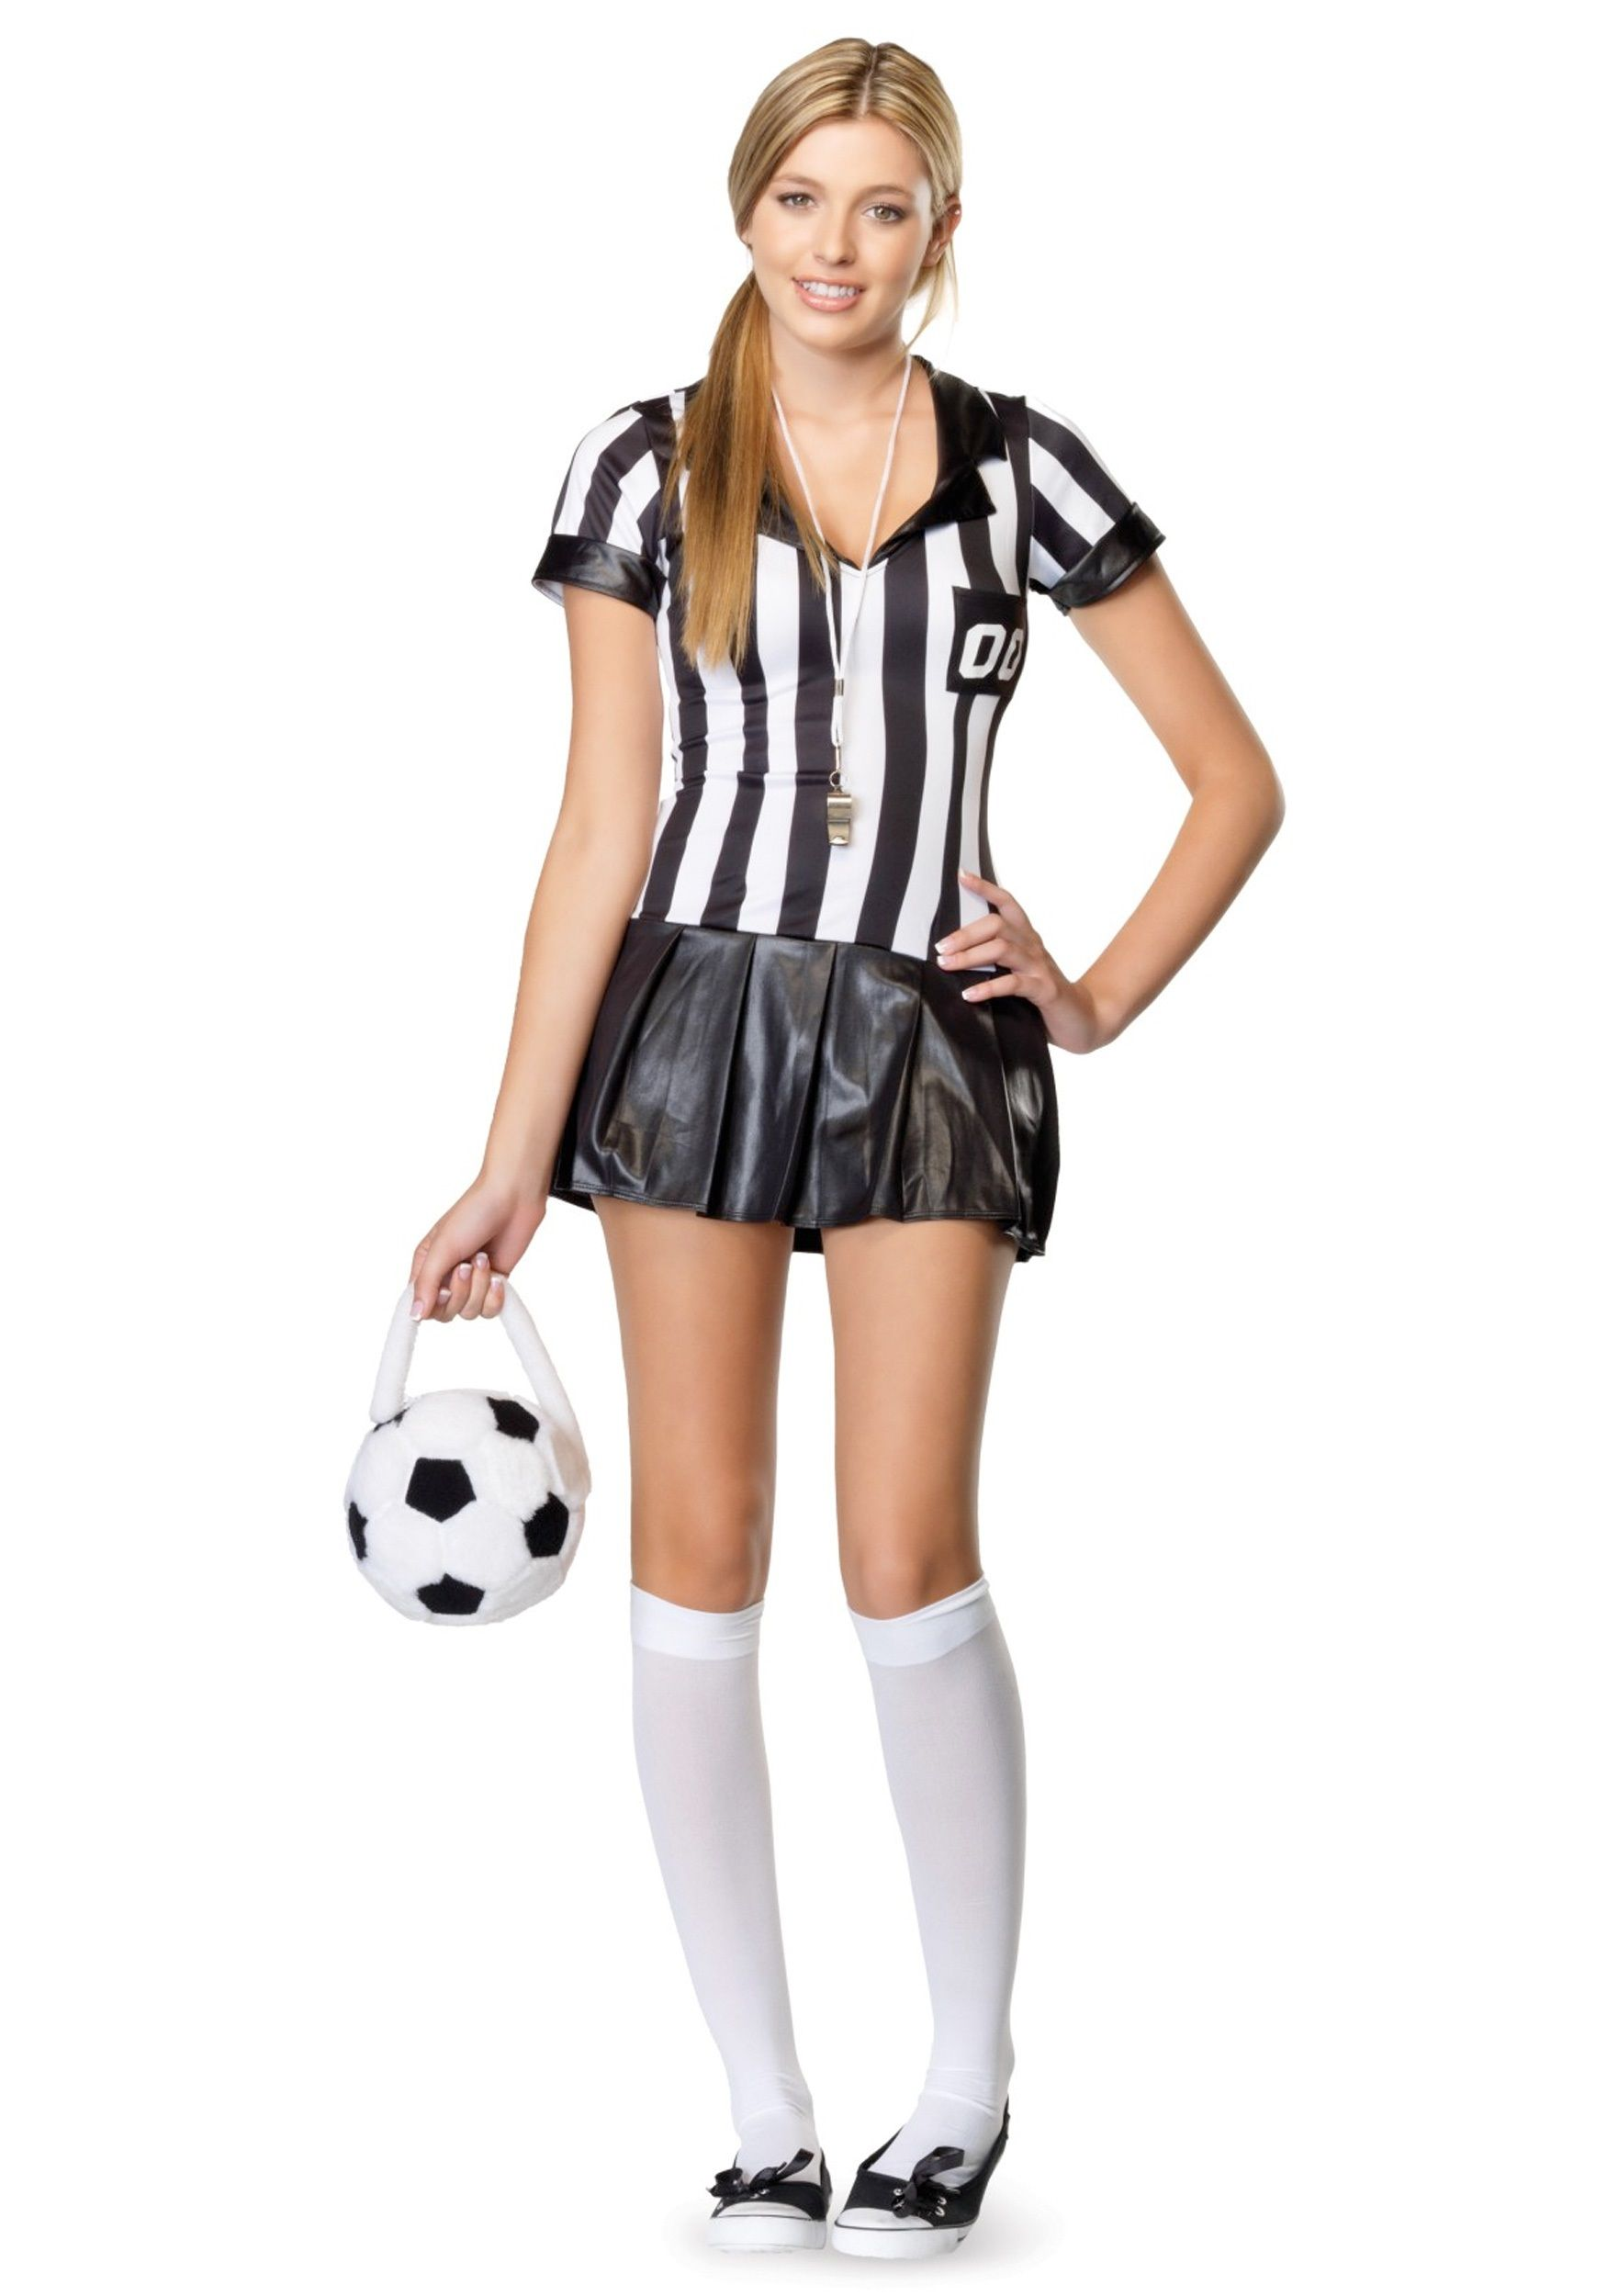 Cute teen costumes home costume ideas sports costumes for Cool halloween costumes for kids girls